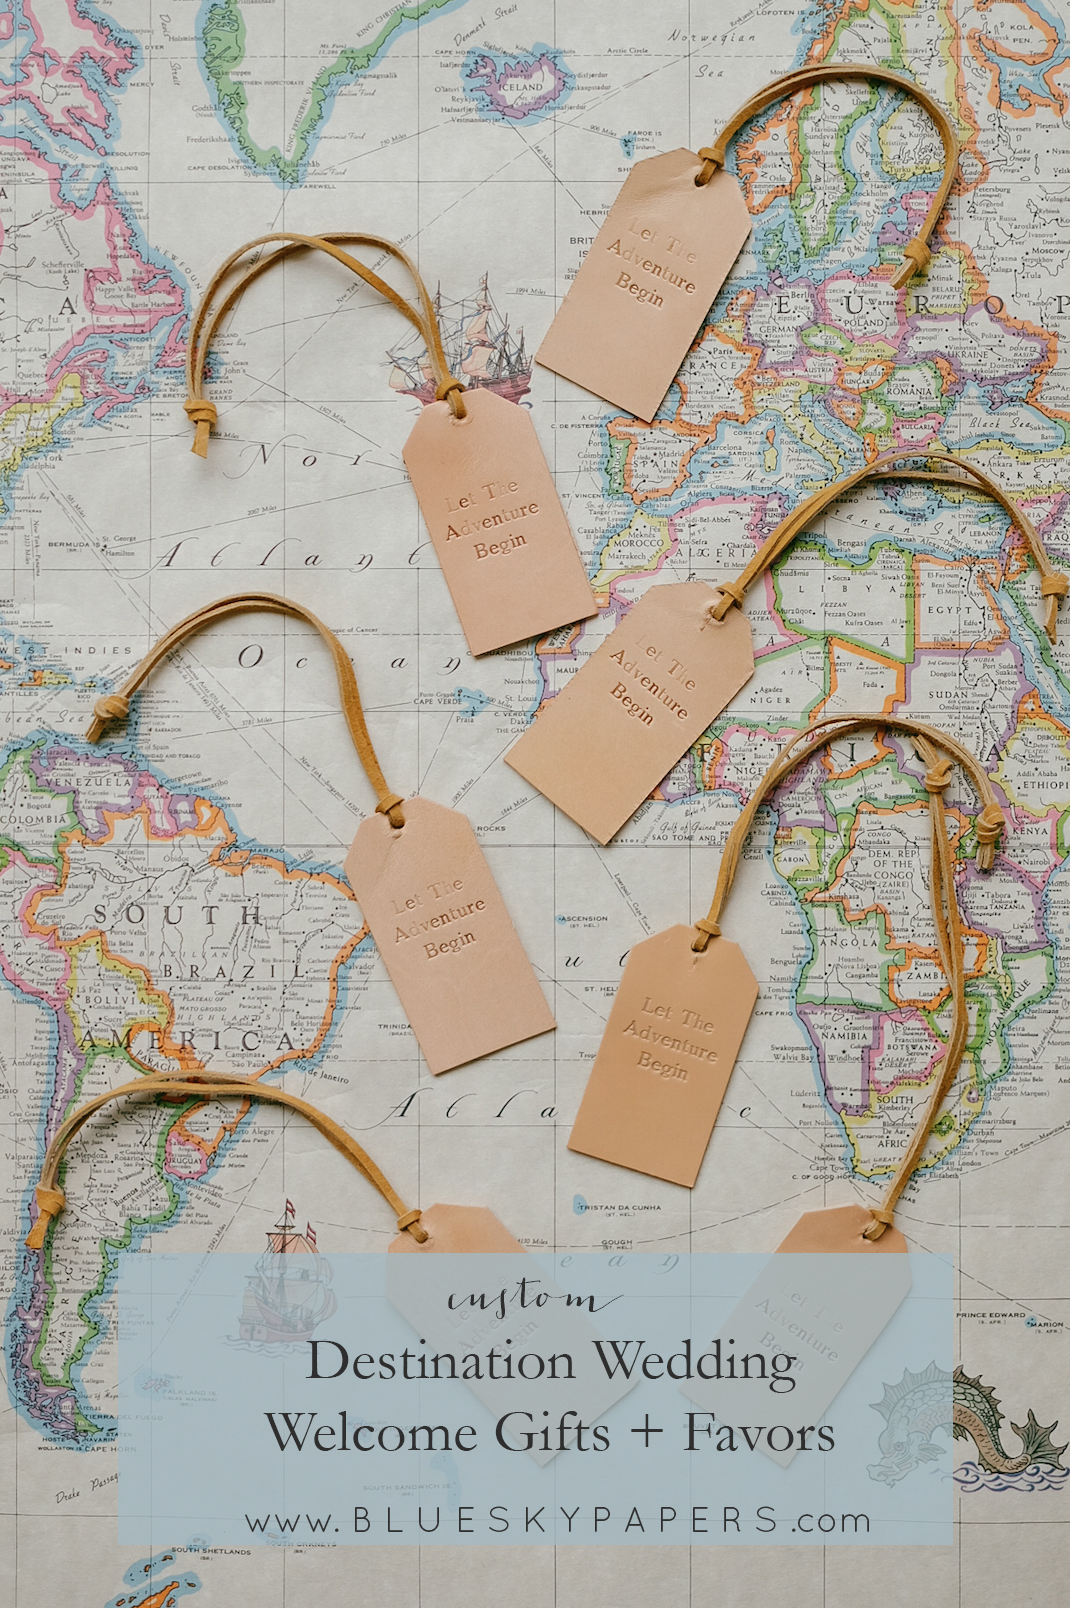 Destination-Wedding-Welcome-Gifts-Favors_Blue-Sky-Papers